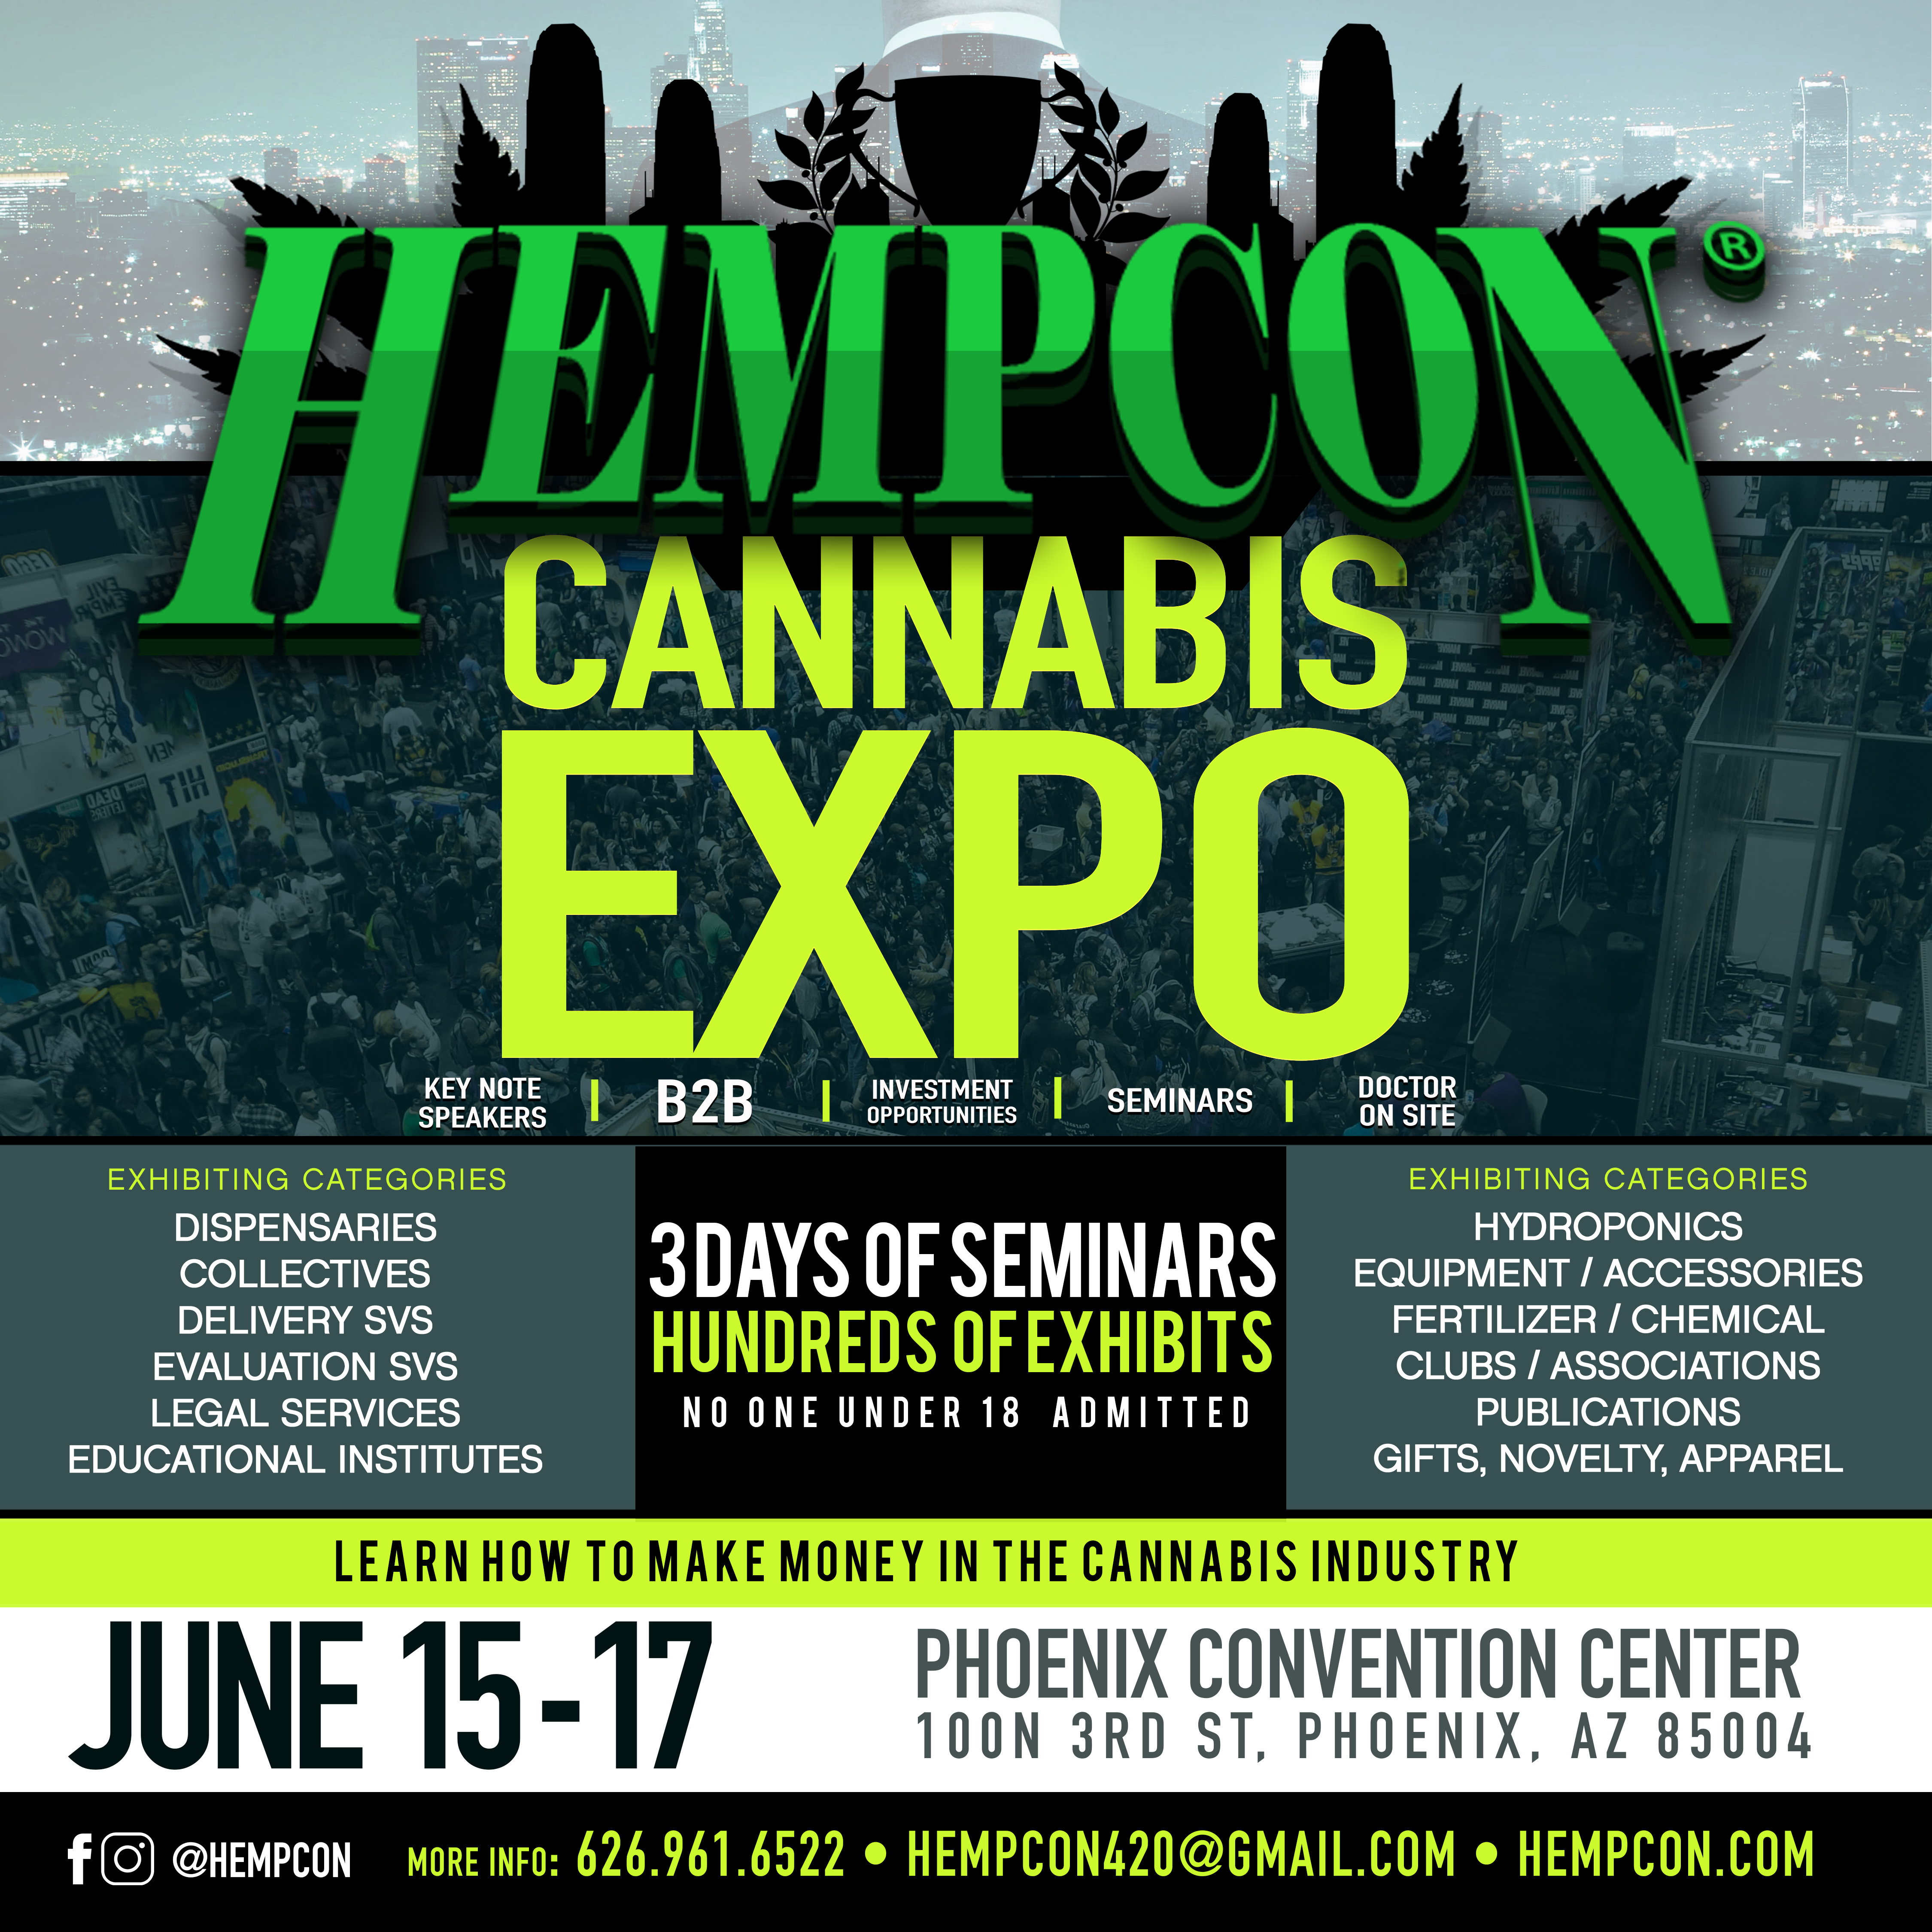 HempCon Cannabis Expo Phoenix June 15-17 at the Phoenix Convention Center